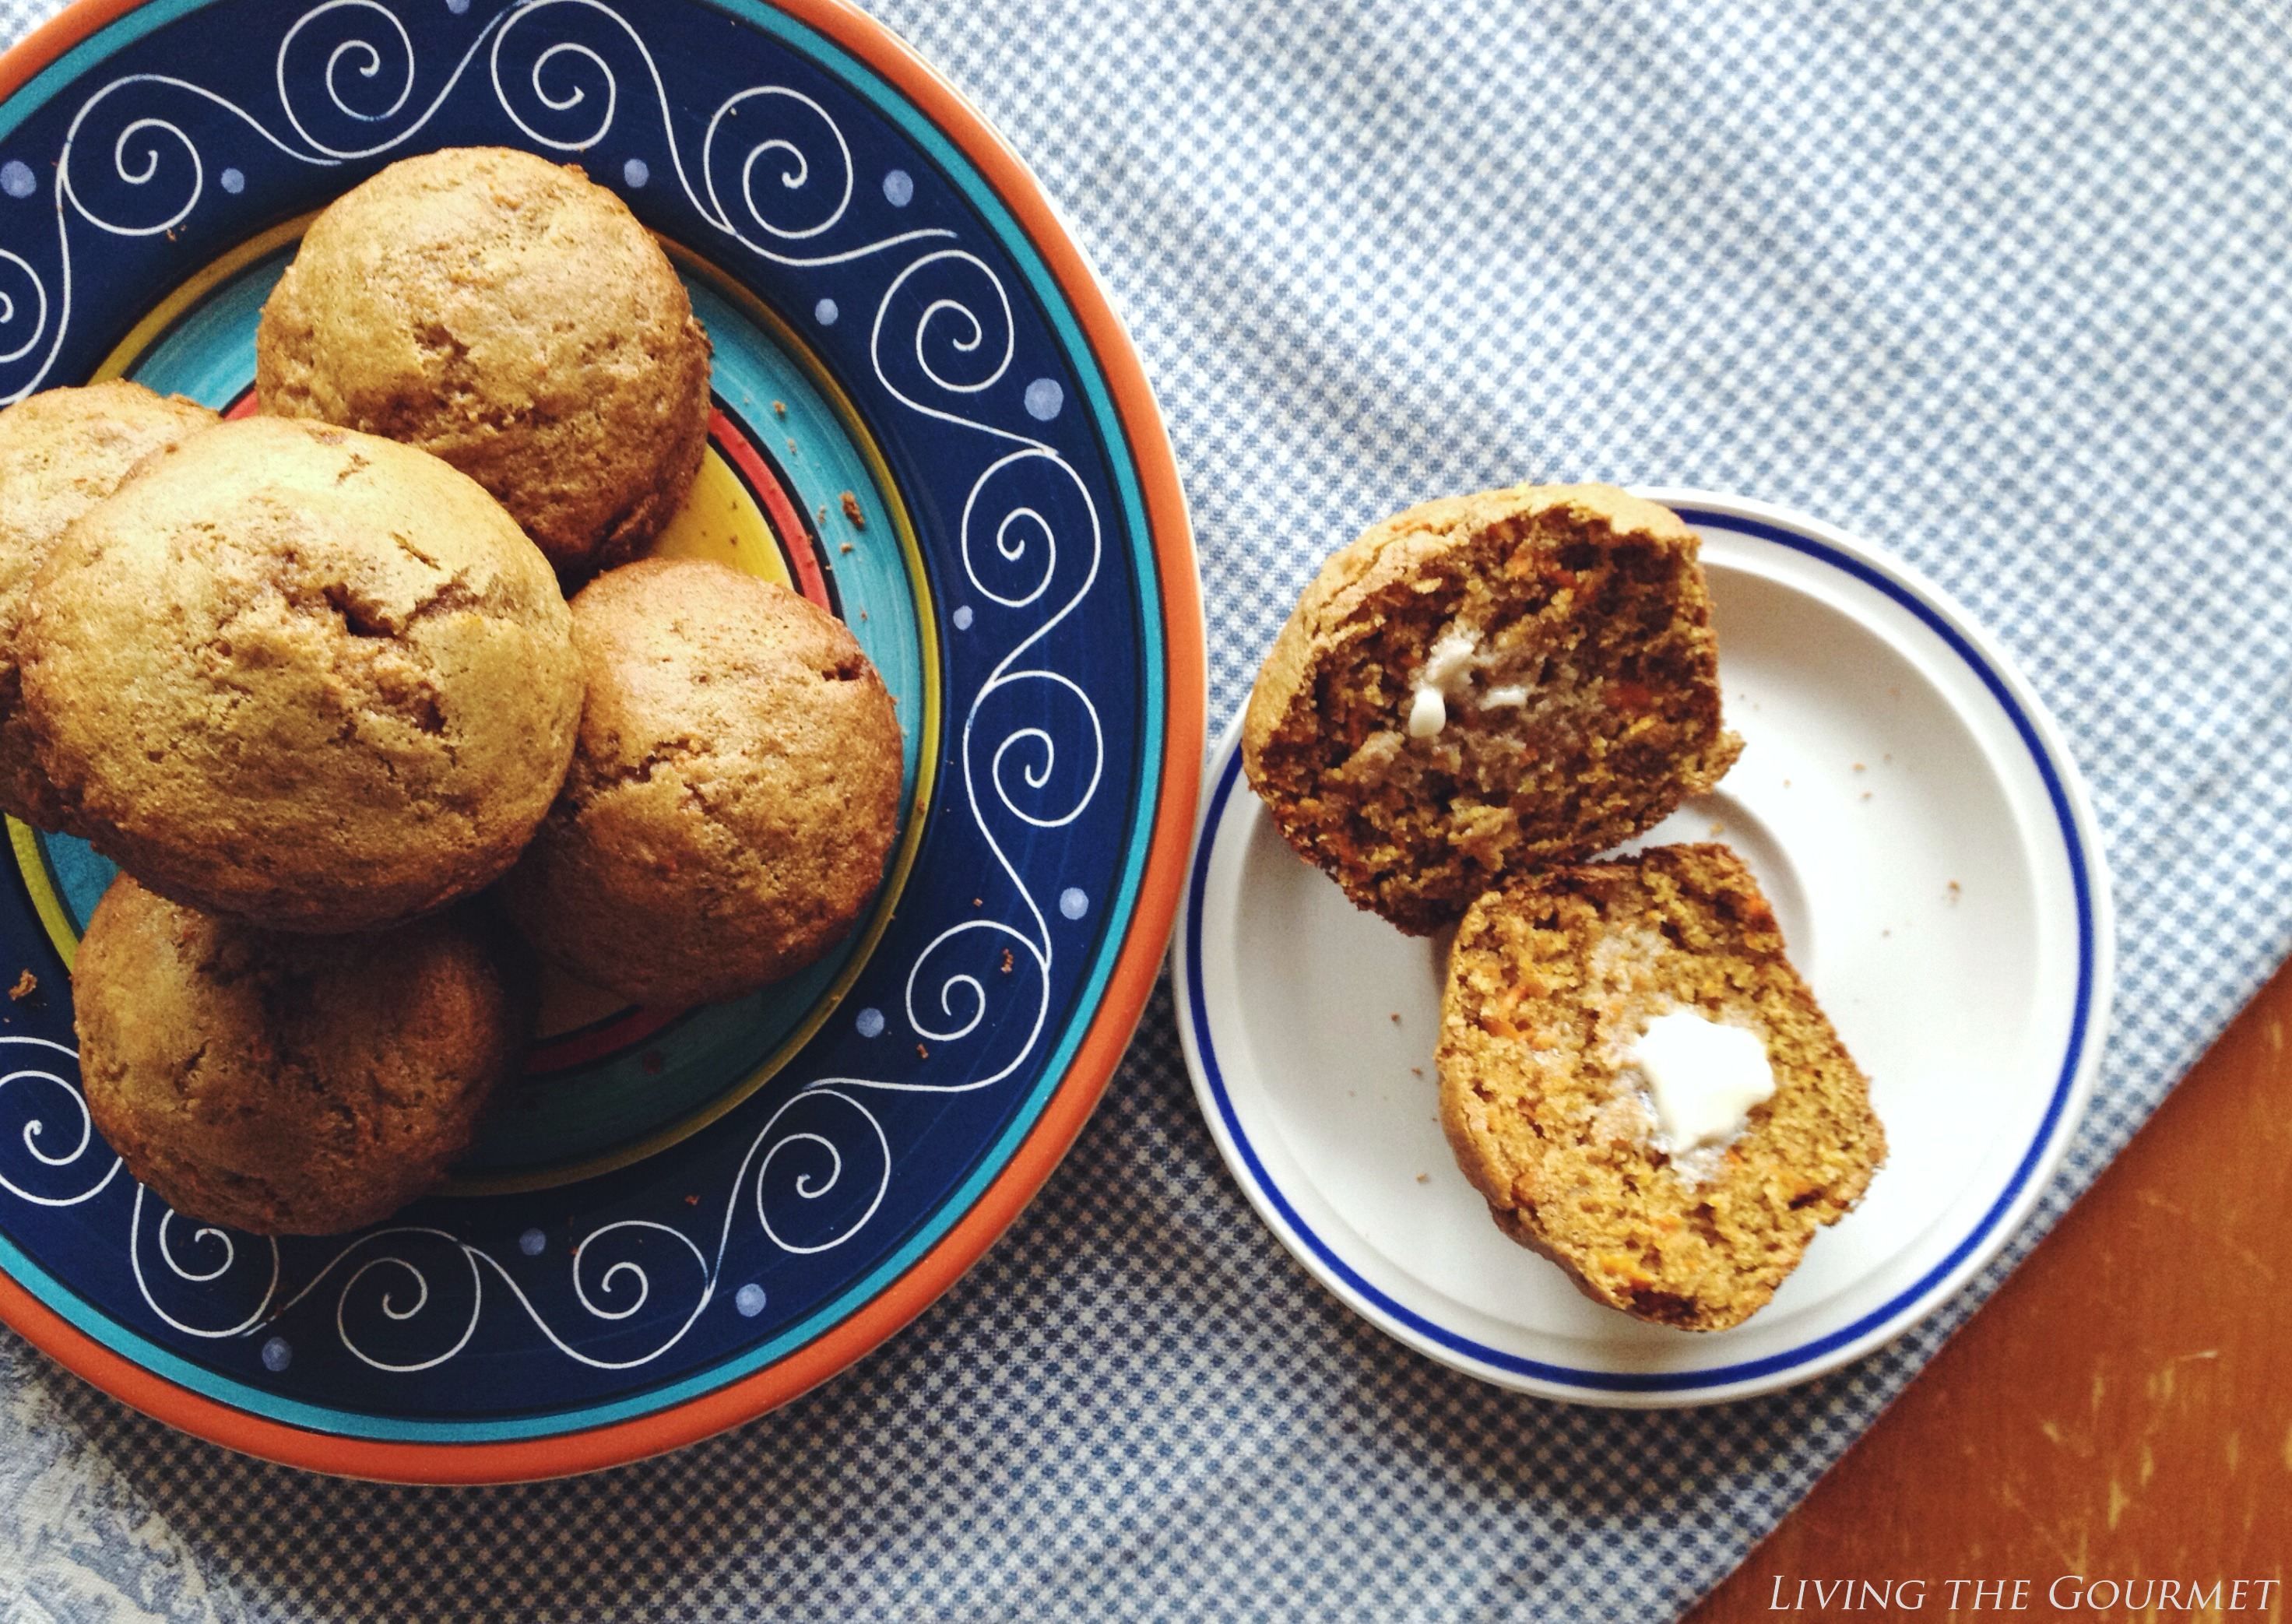 Living the Gourmet: Spelt Carrot and Ginger Muffins